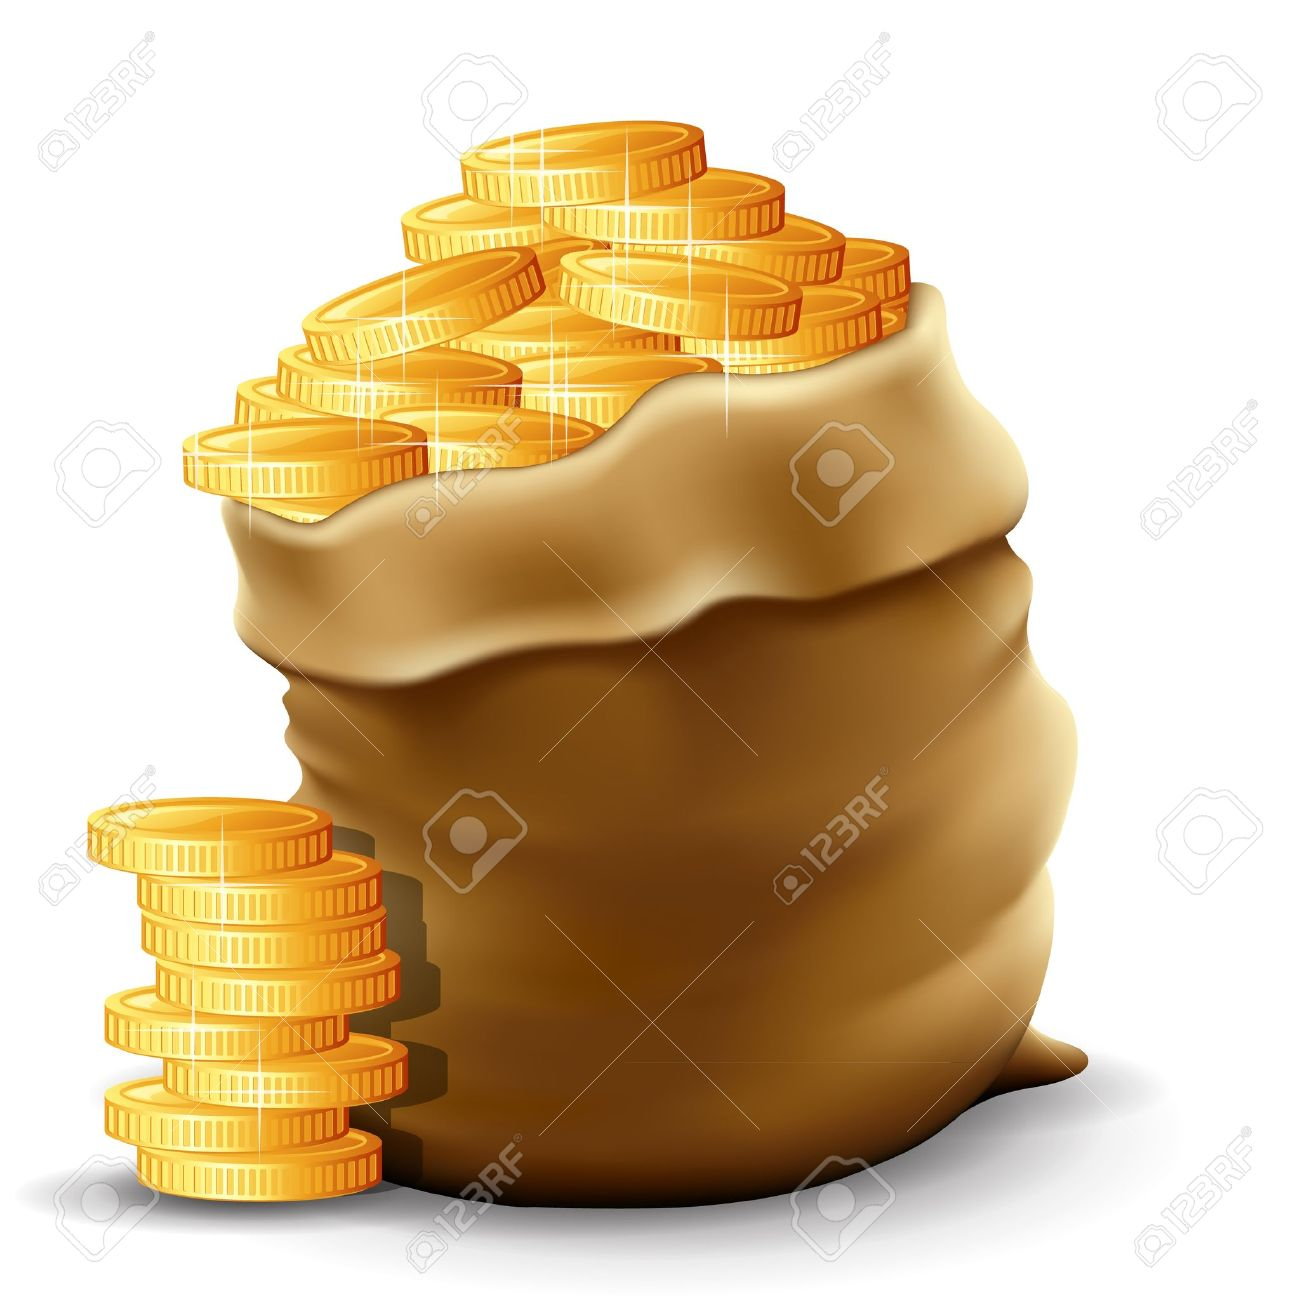 Illustration of a sack with full gold coins in it - 13650460